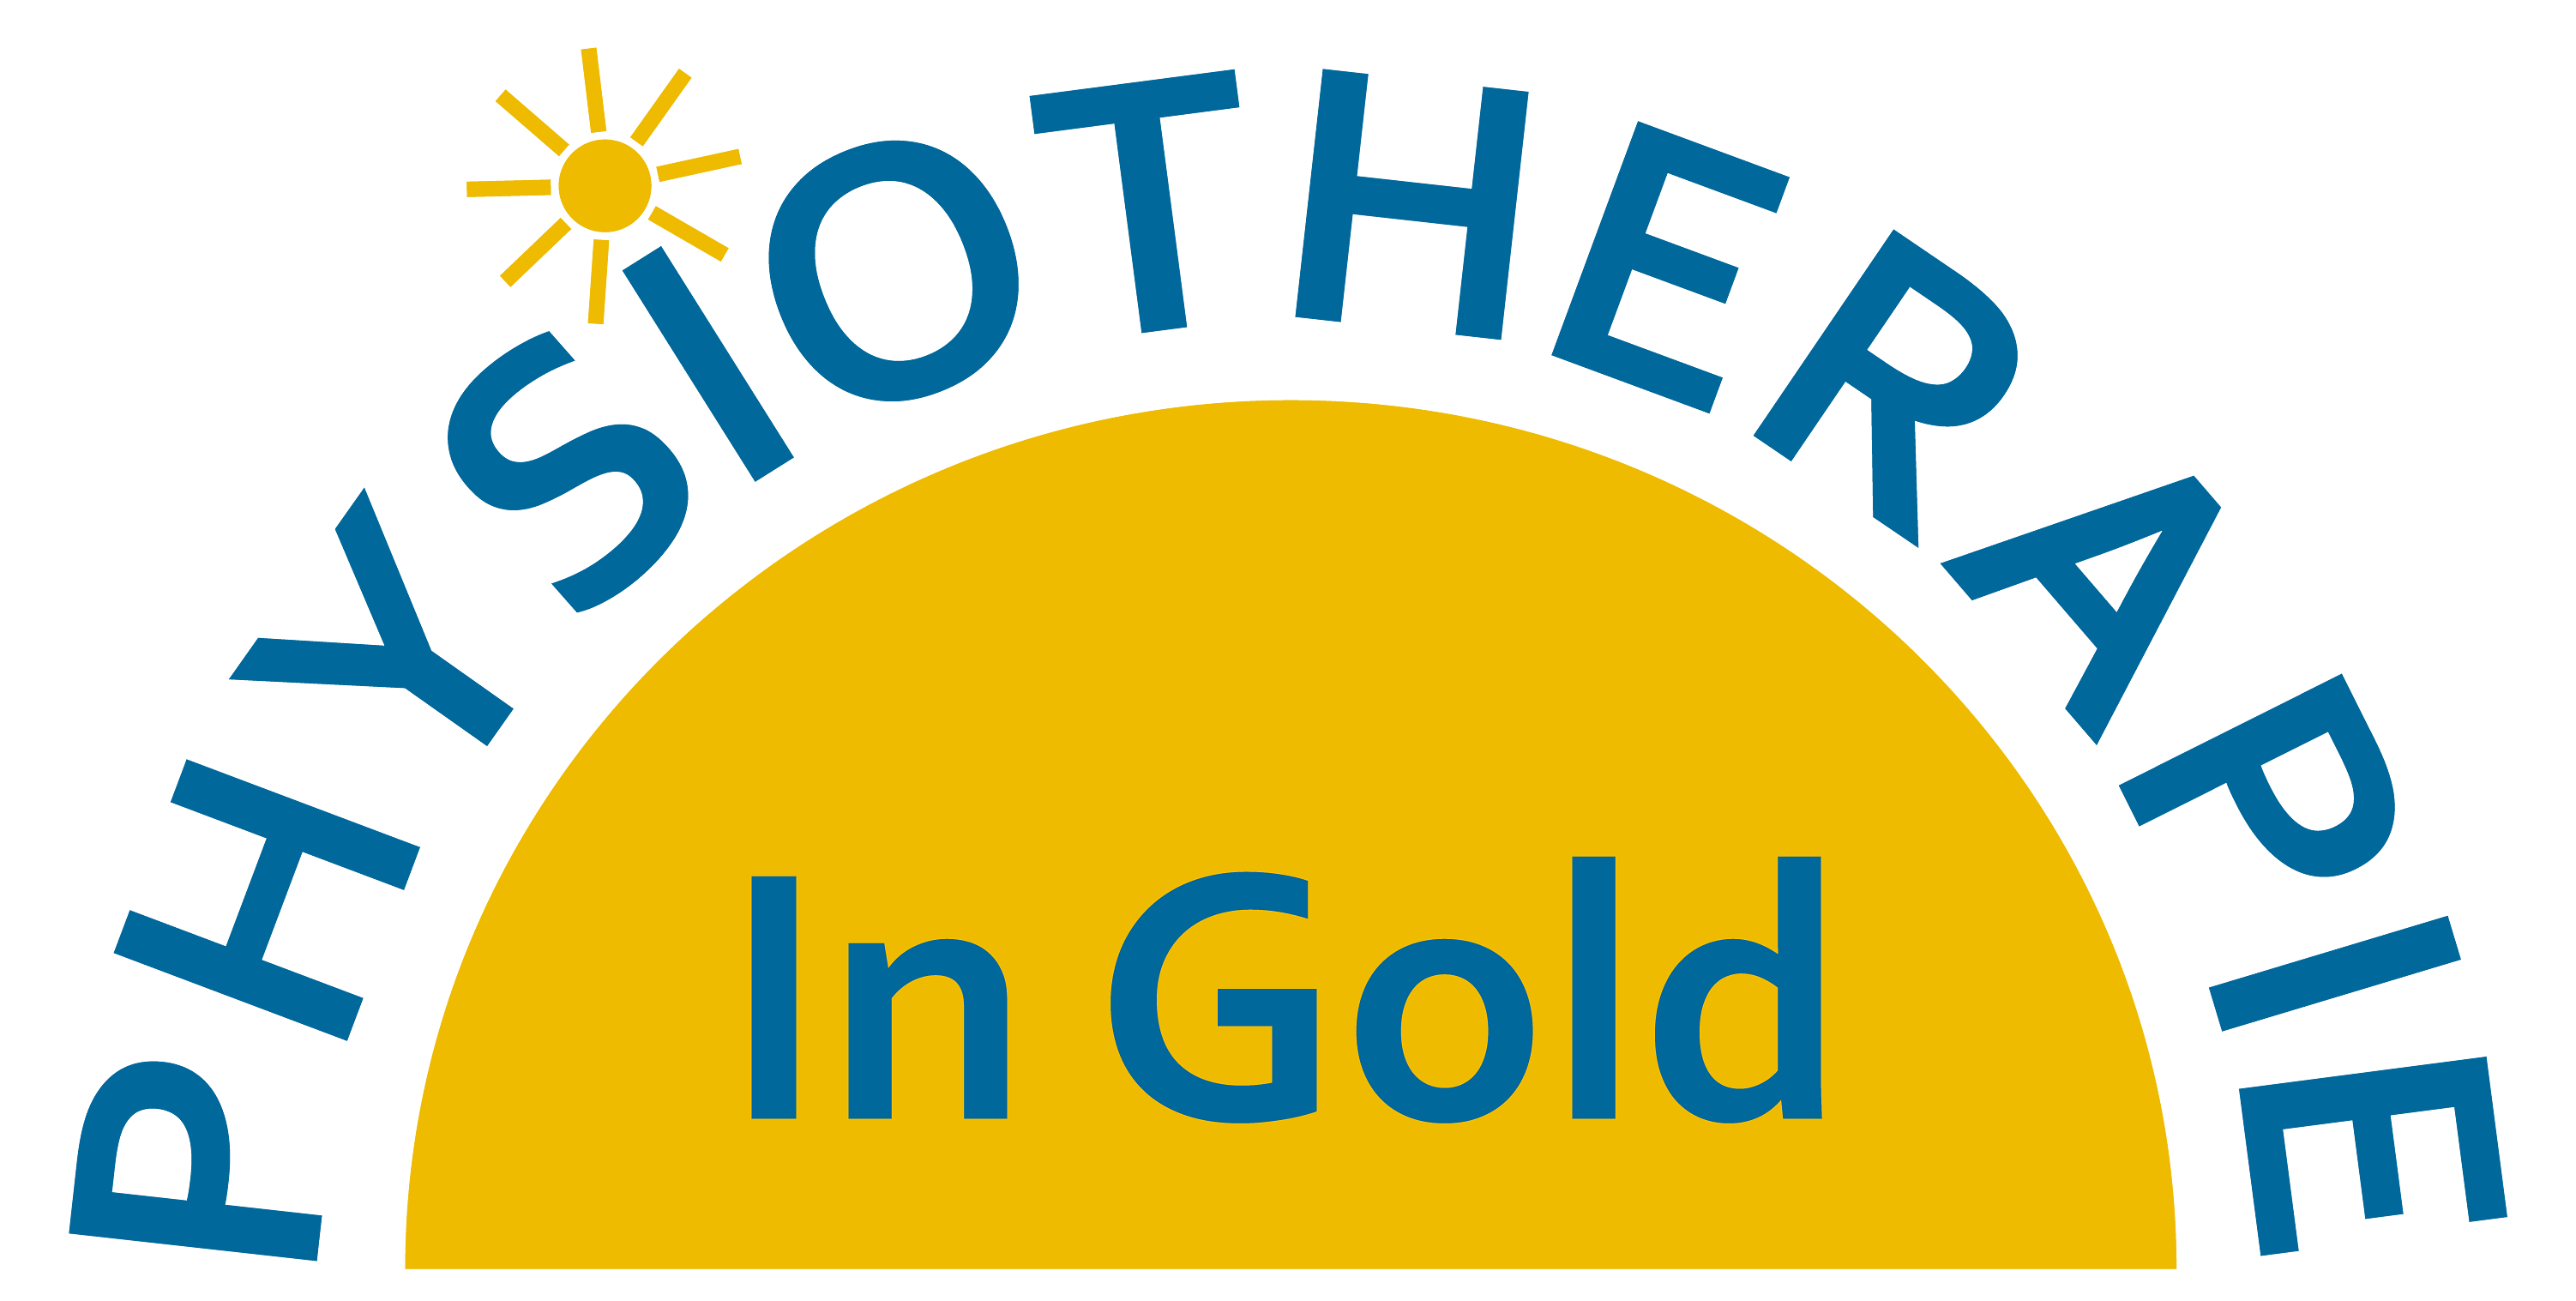 Physiotherapie In Gold